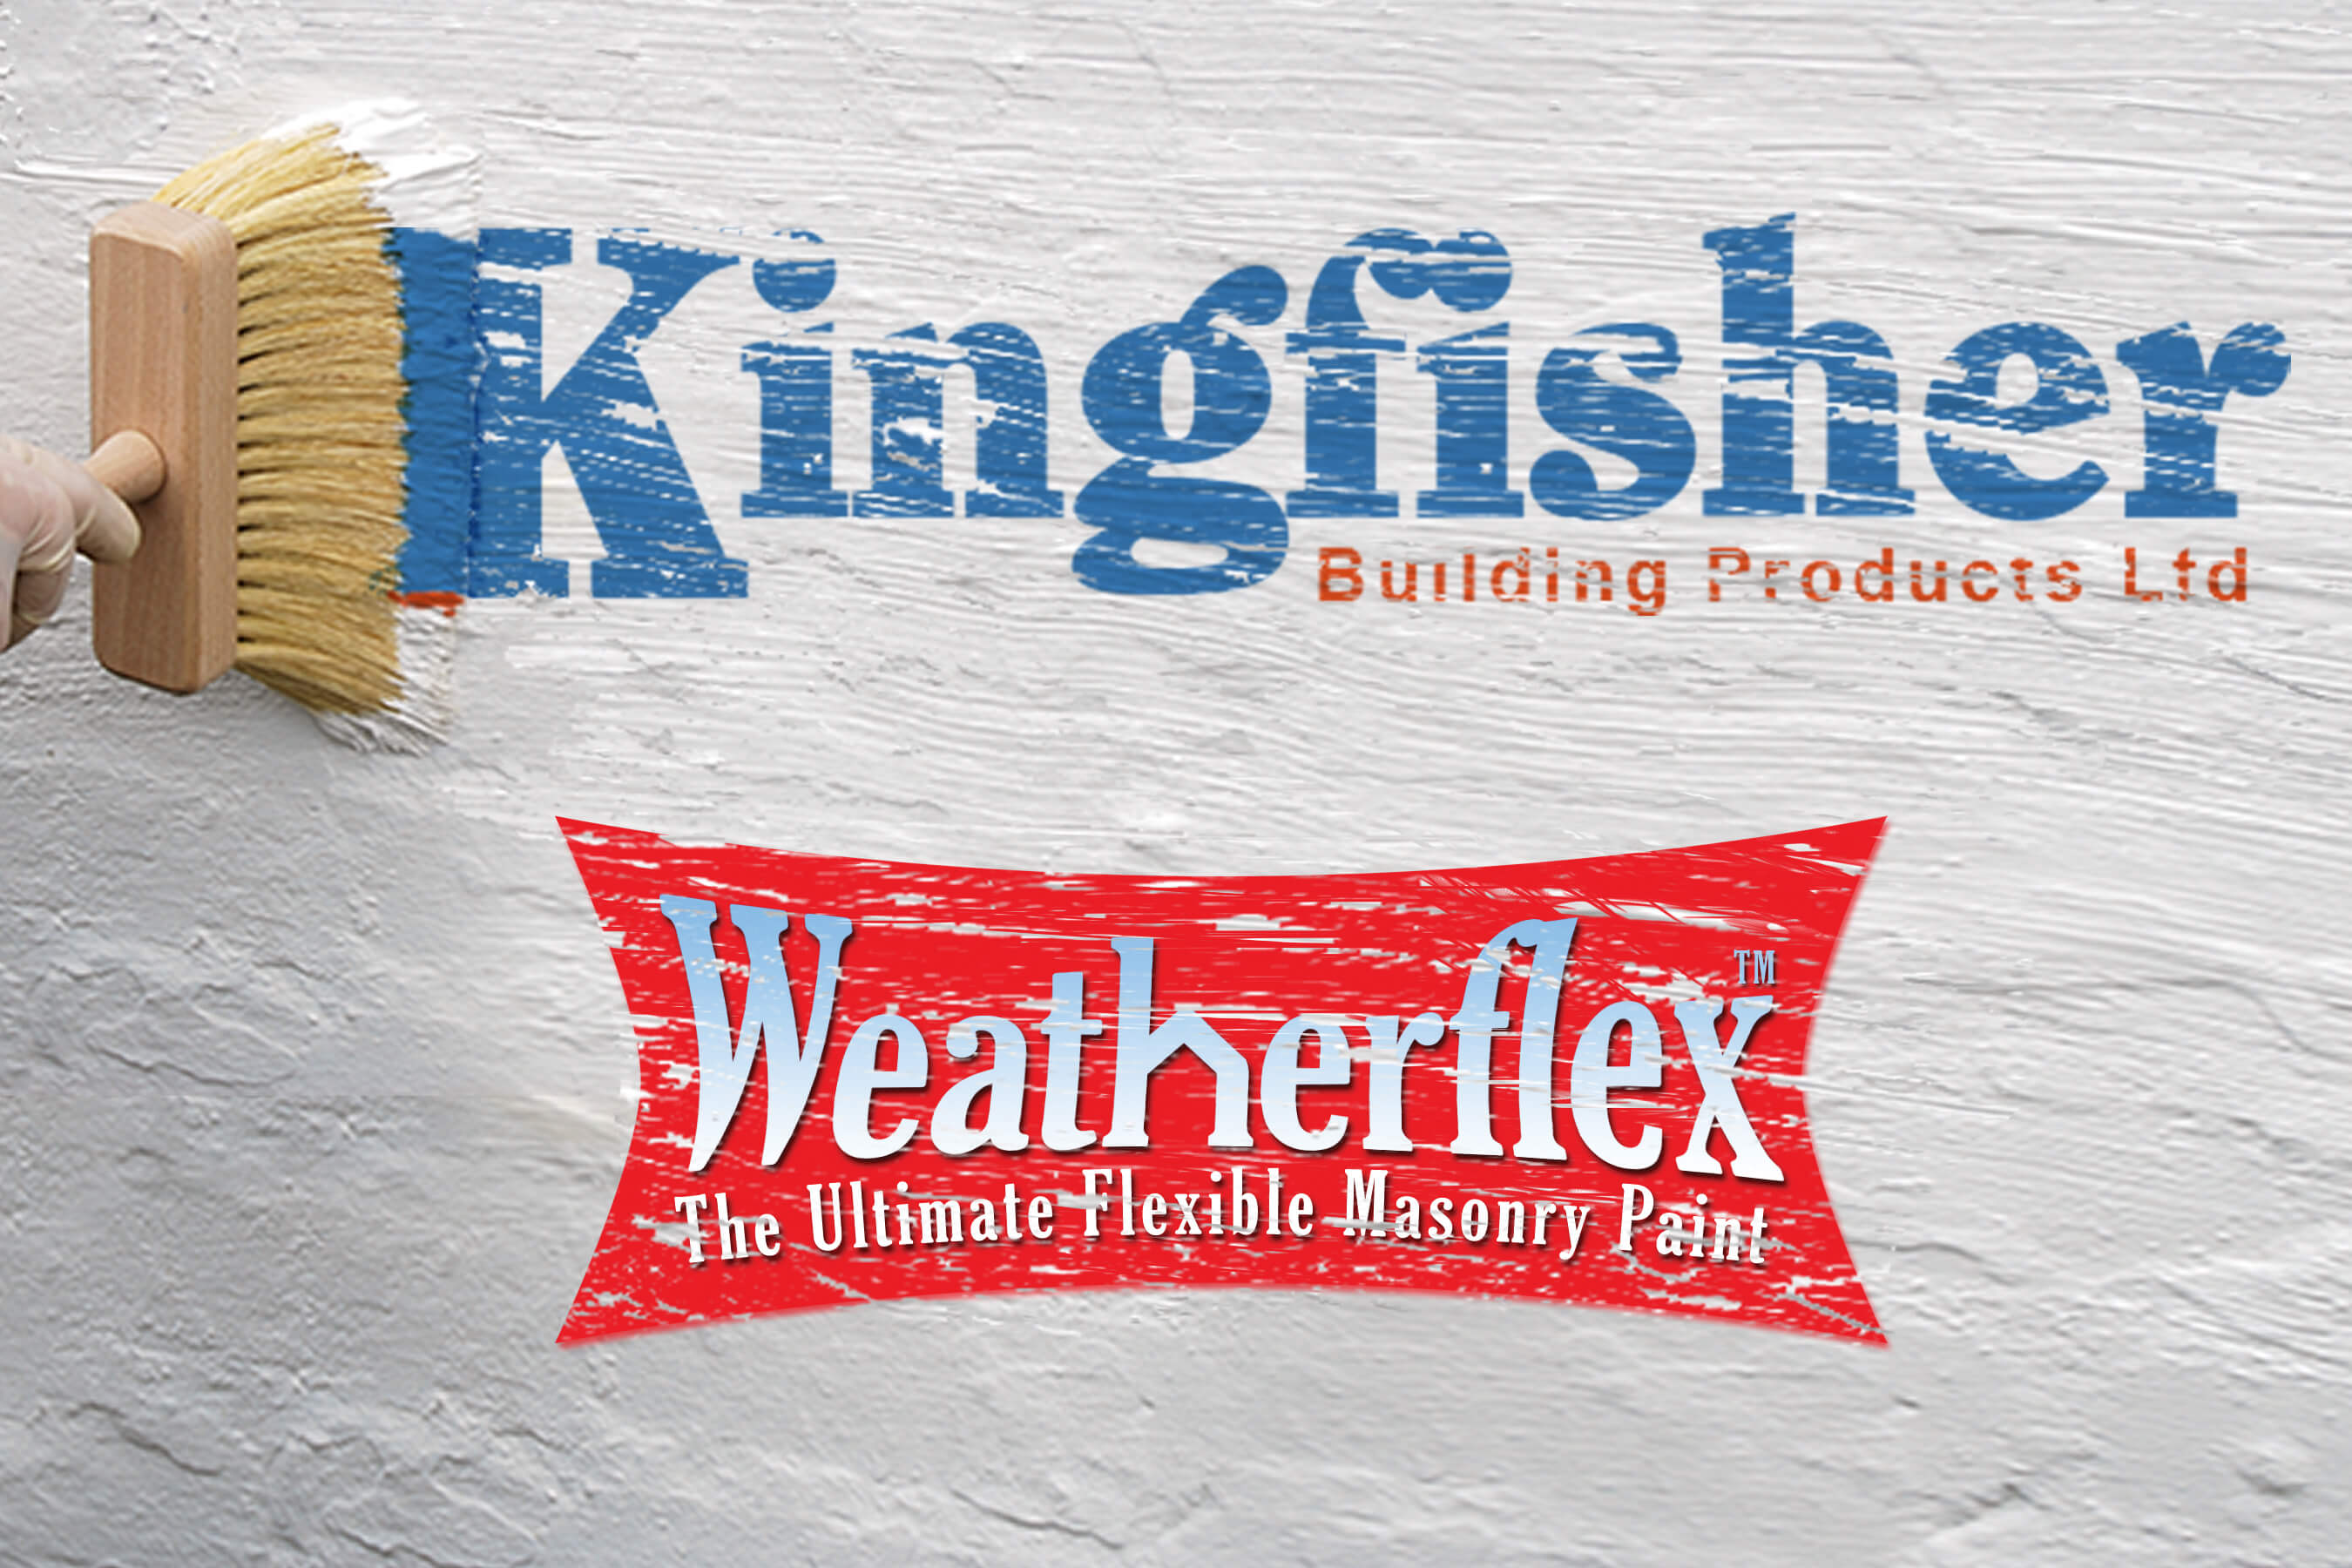 Smooth Masonry Paint (Weatherflex)